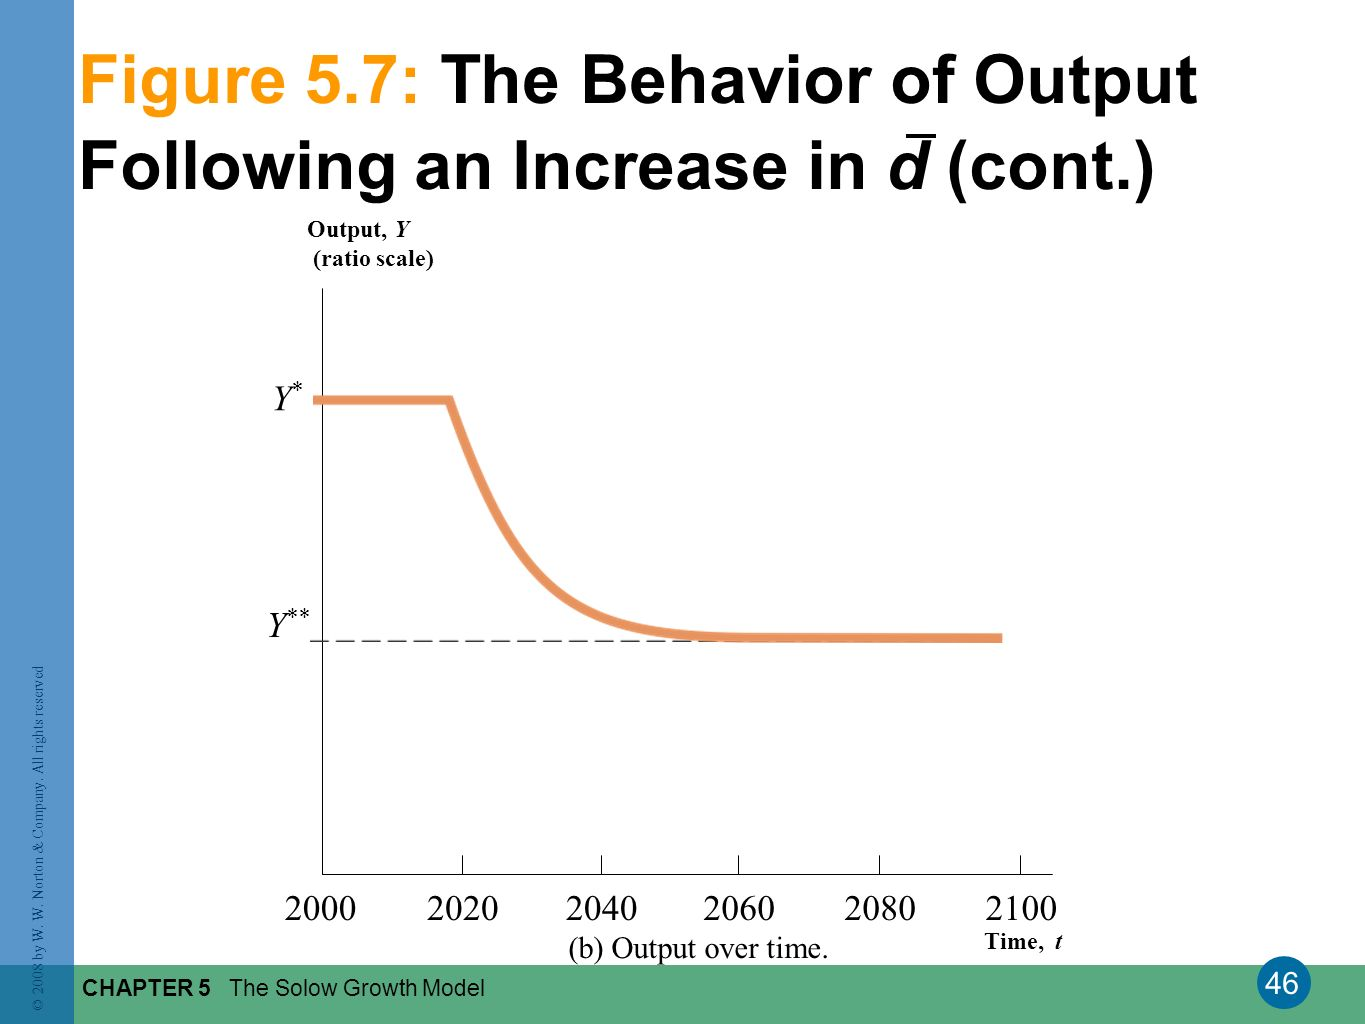 46 © 2008 by W. W. Norton & Company. All rights reserved CHAPTER 5 The Solow Growth Model Figure 5.7: The Behavior of Output Following an Increase in